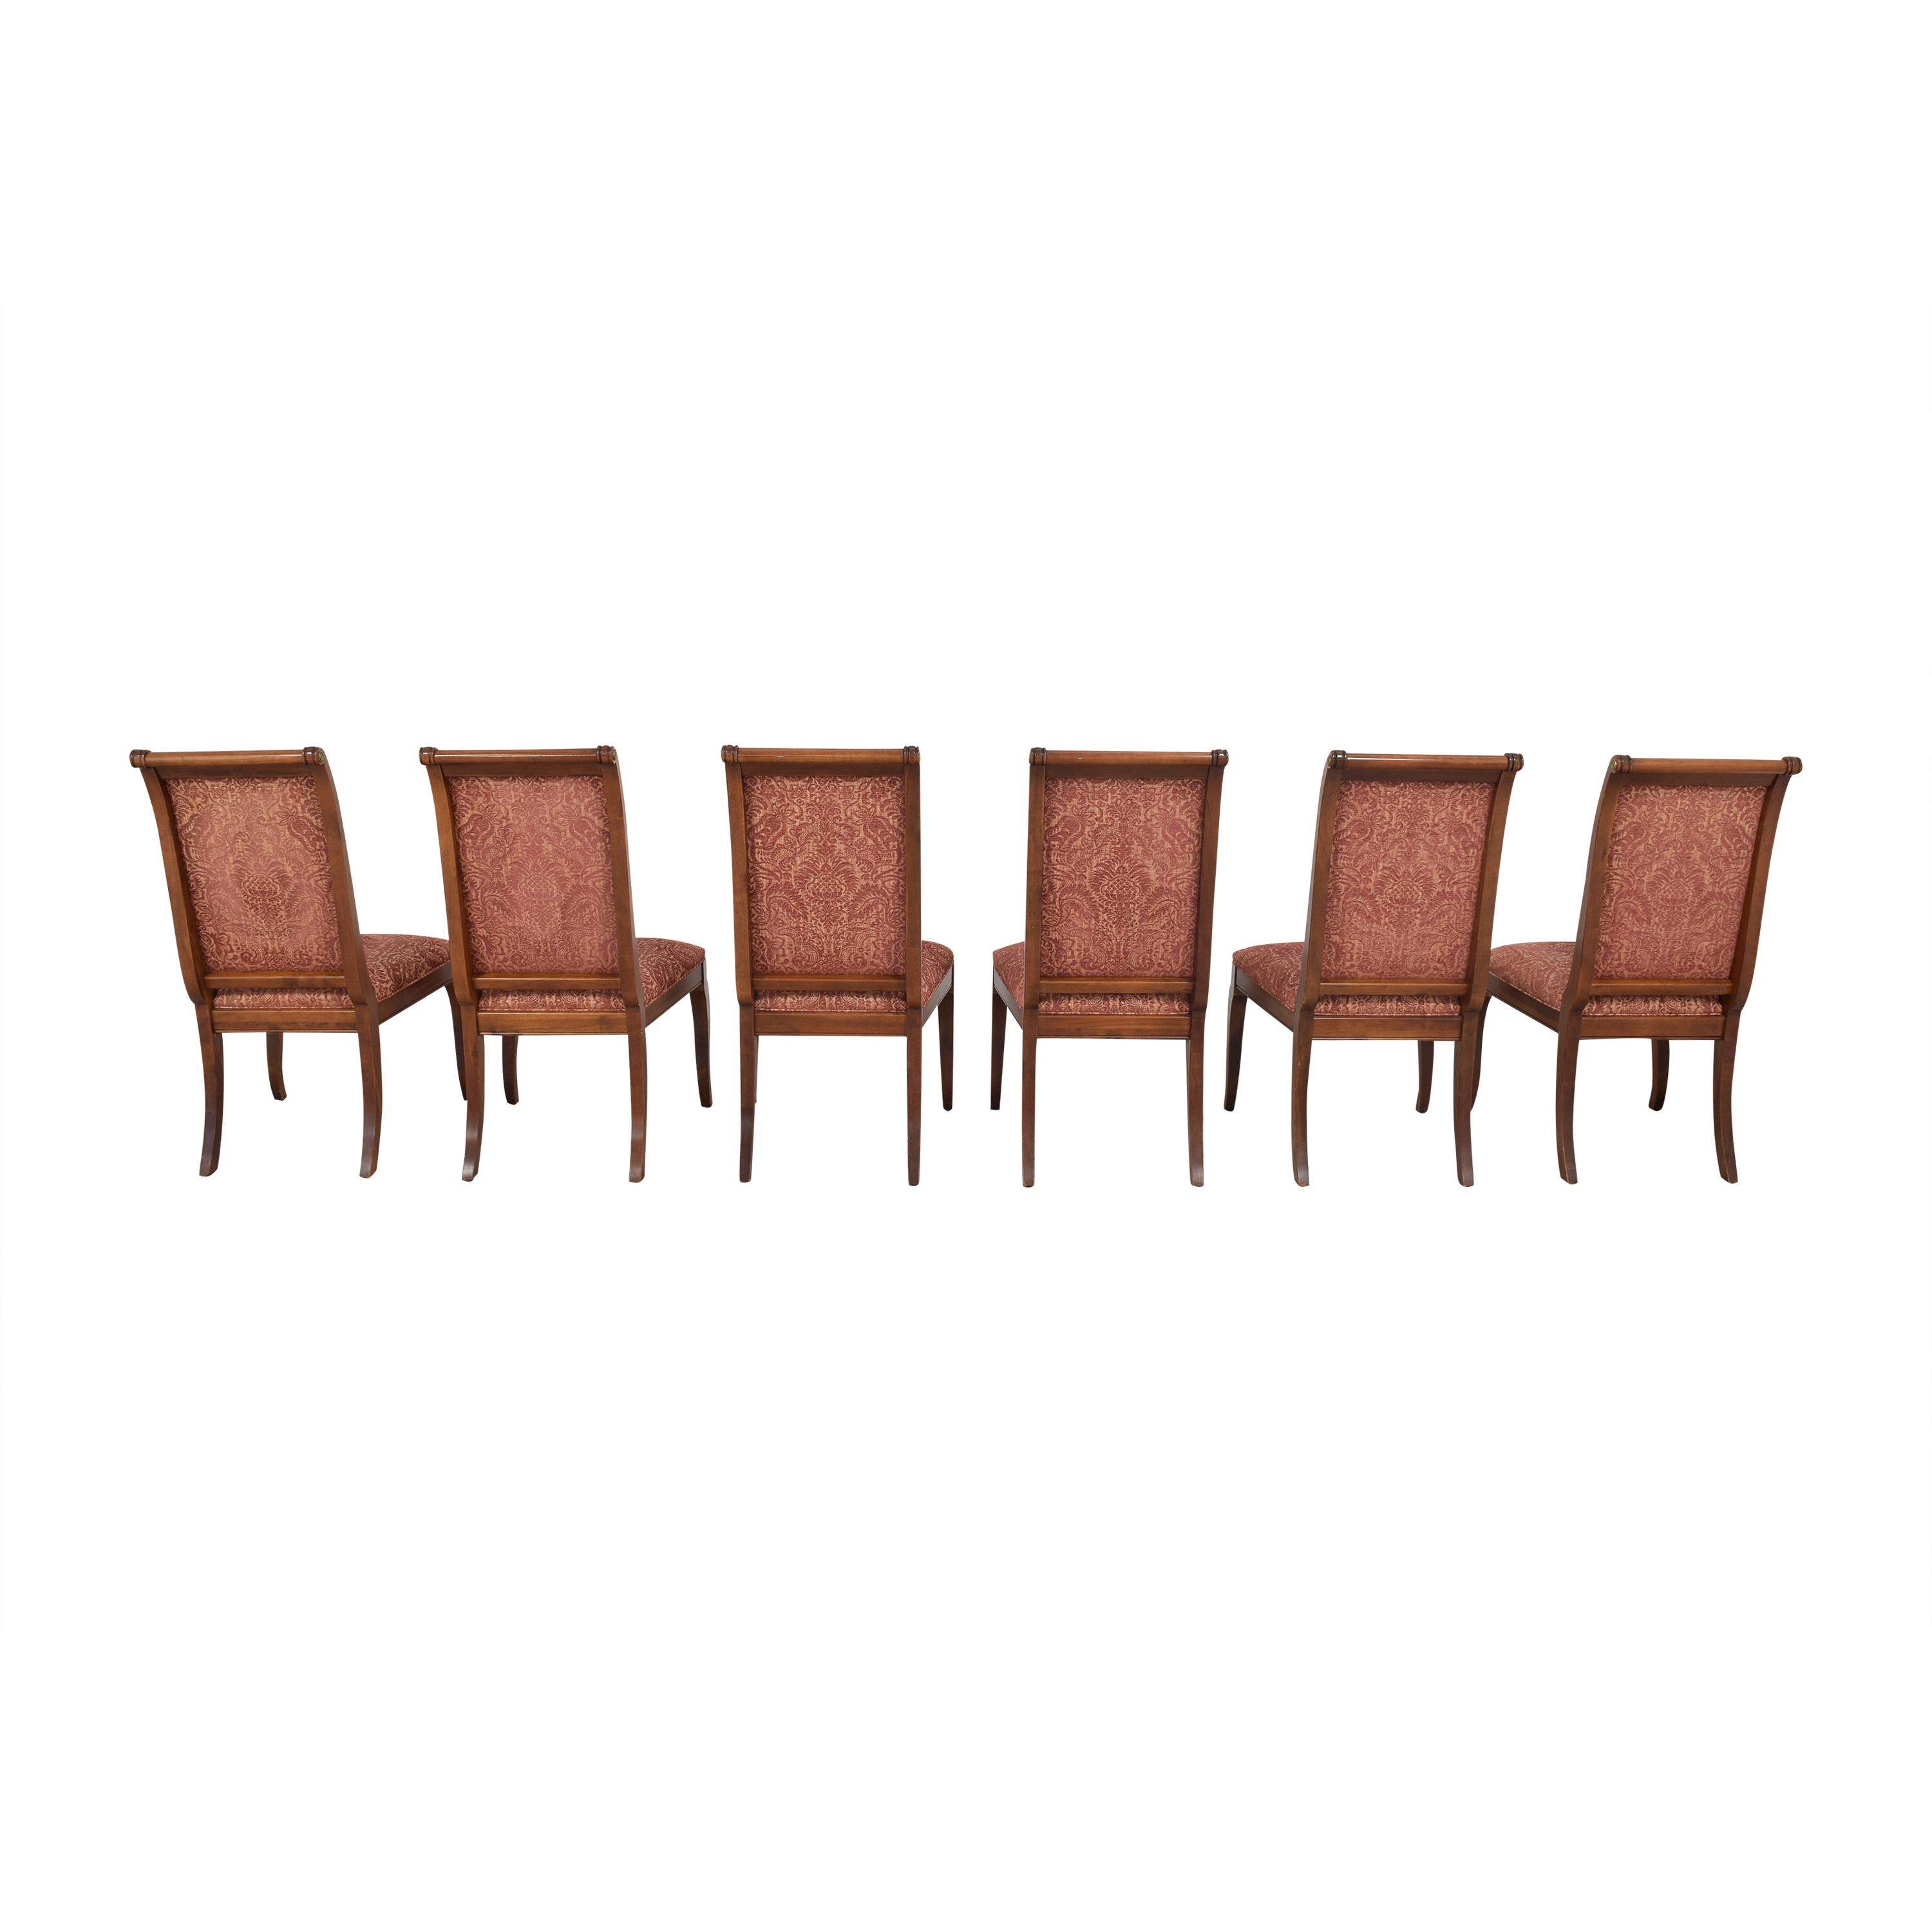 Ethan Allen Ethan Allen Upholstered Dining Side Chairs on sale